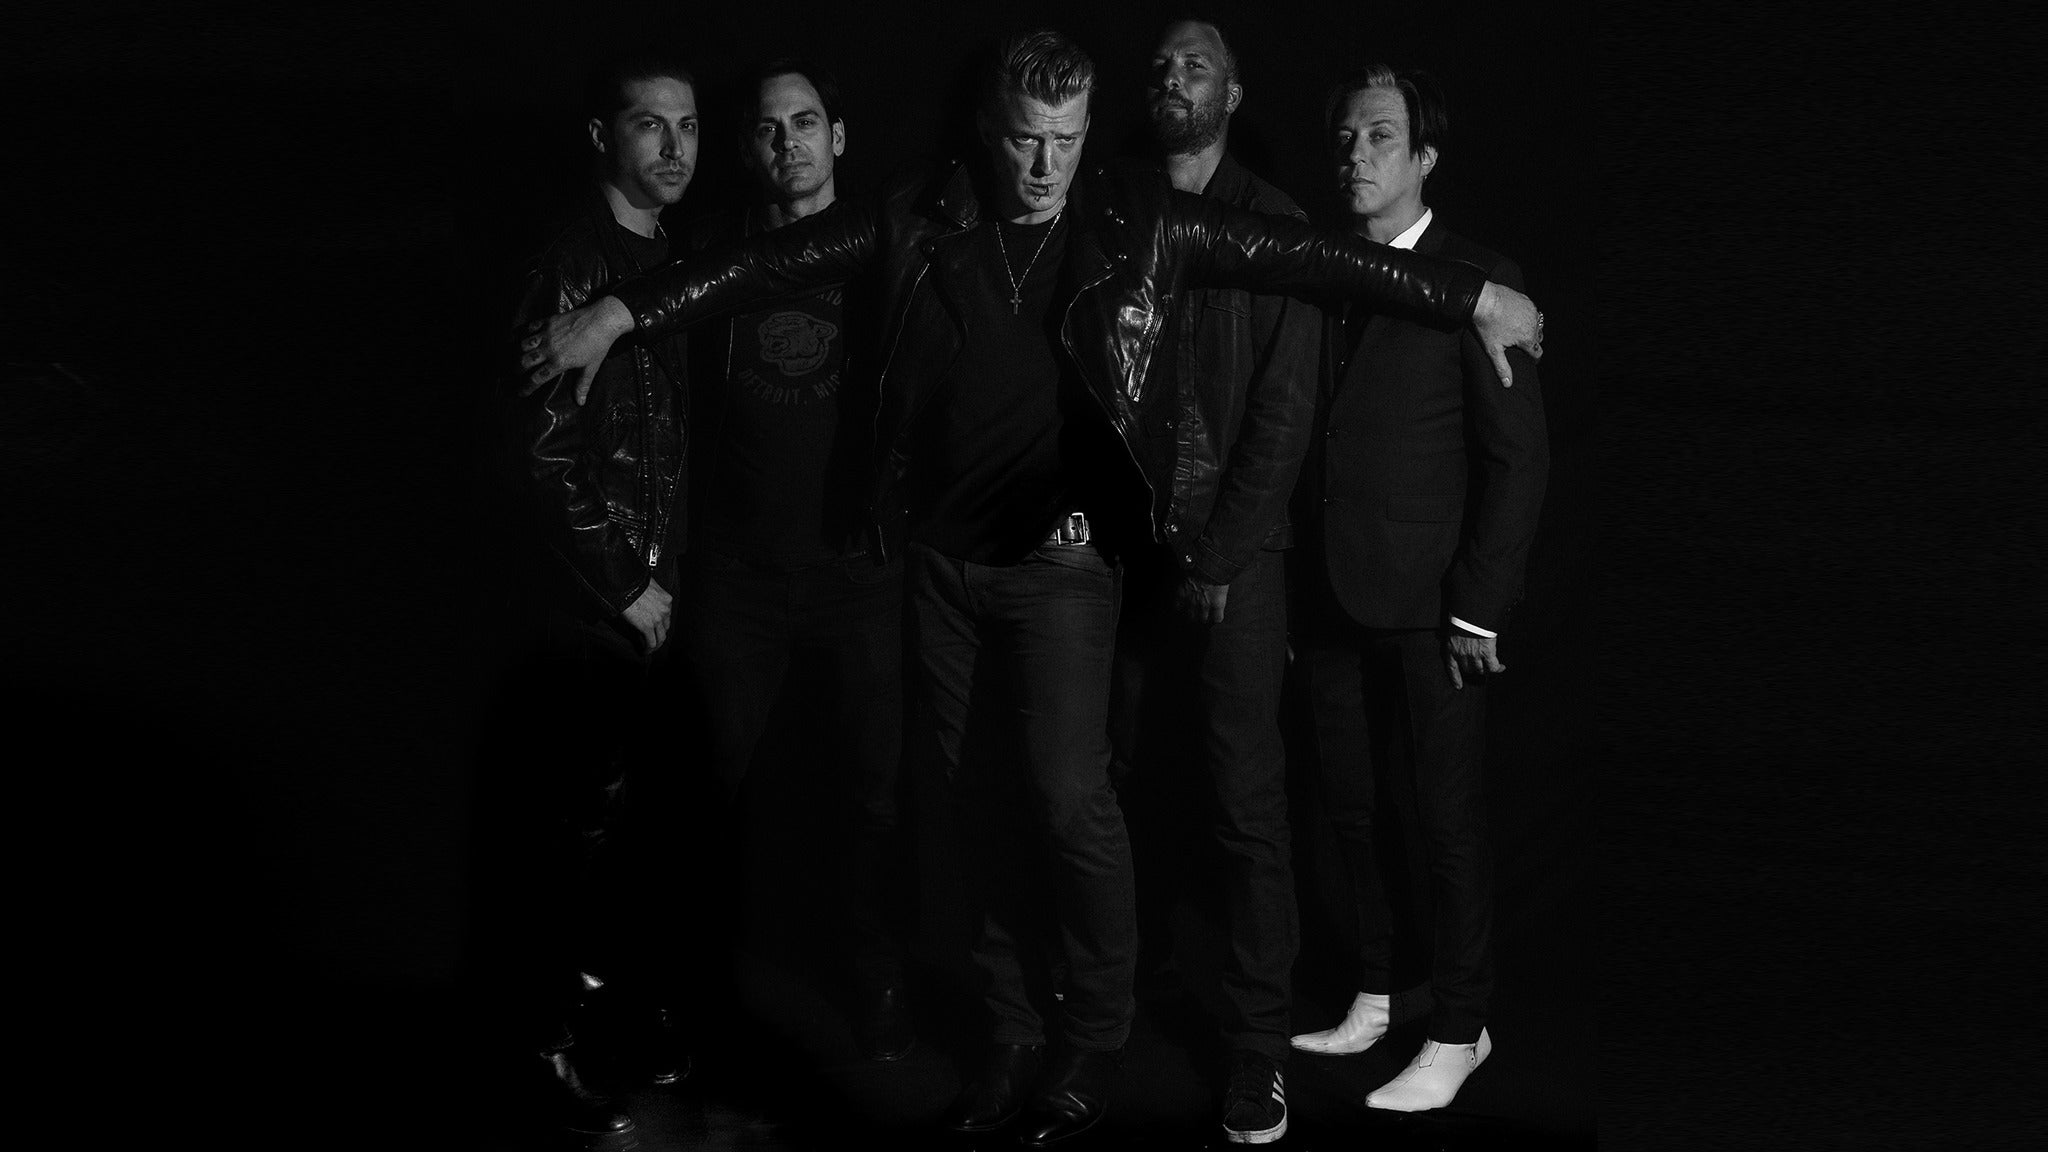 Queens of the Stone Age: Villains Tour 2018 at KeyArena